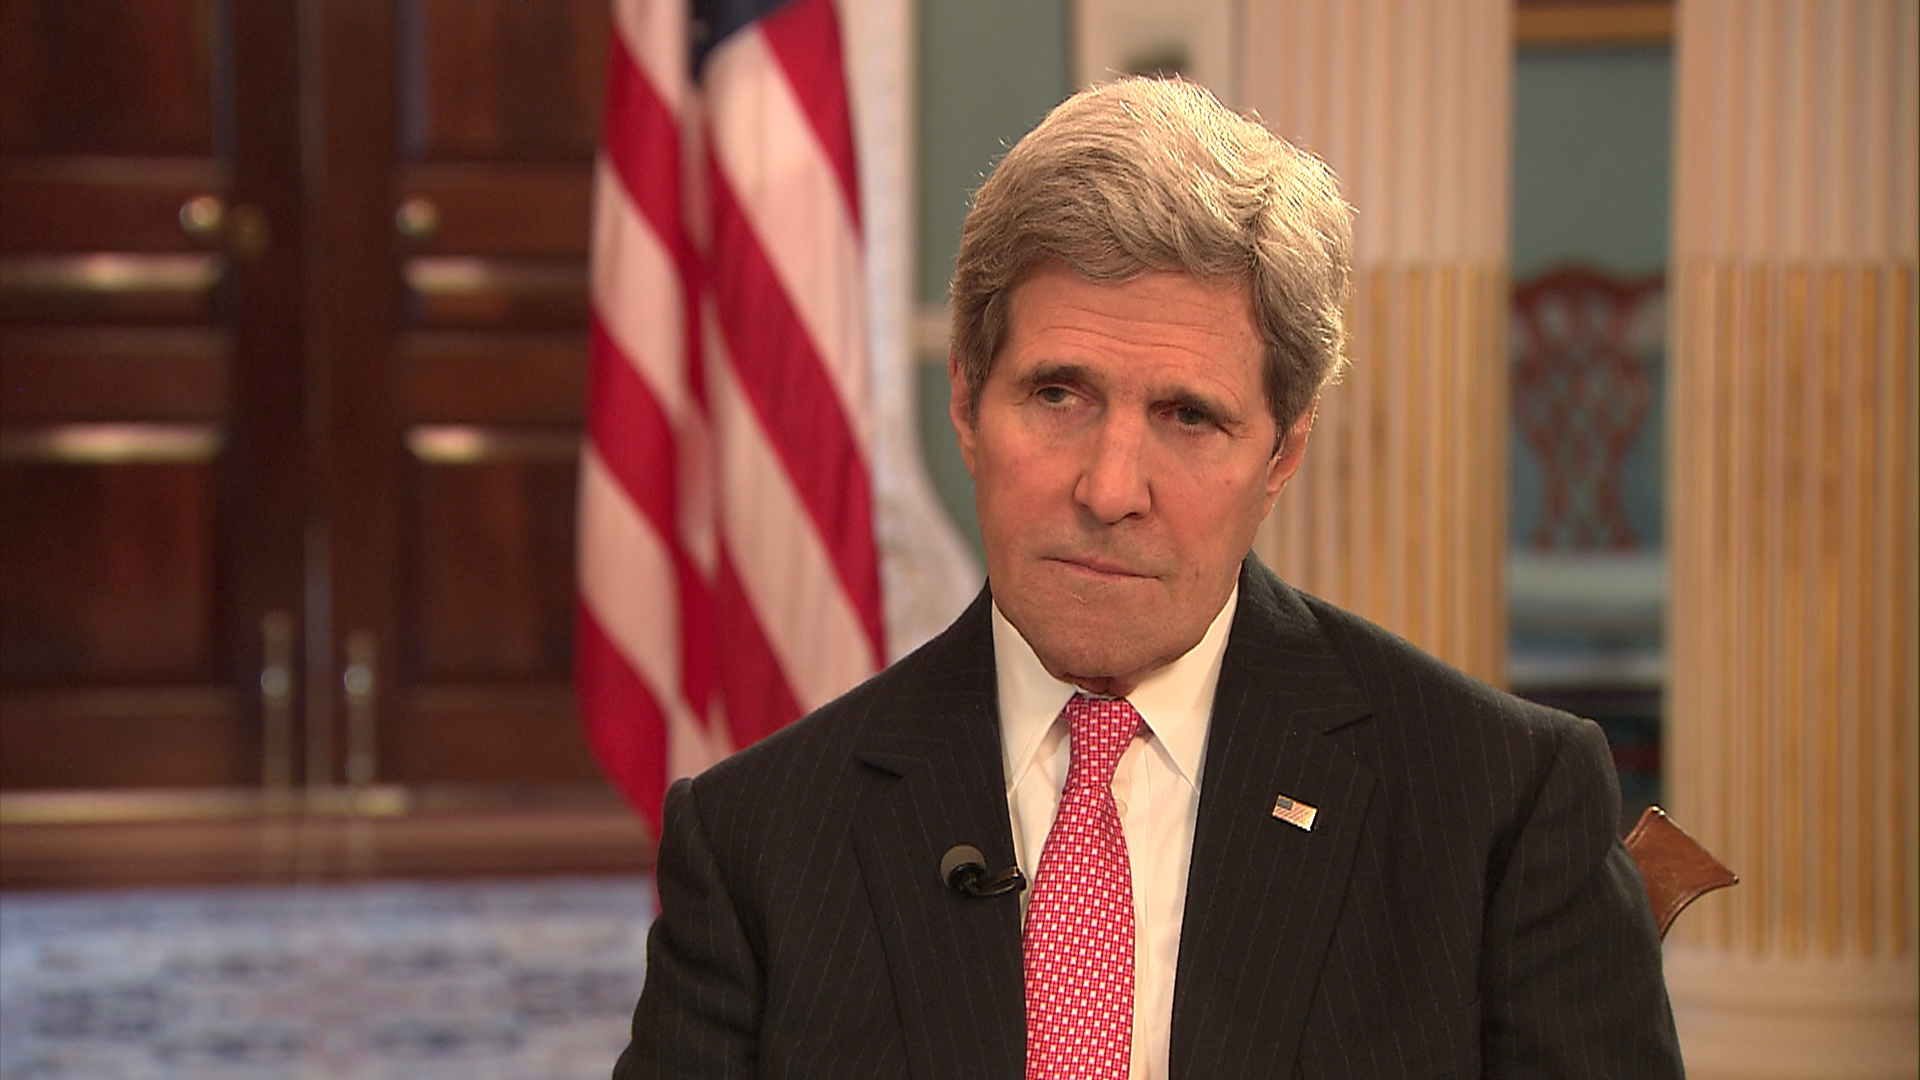 Kerry on Israel: It's complicated